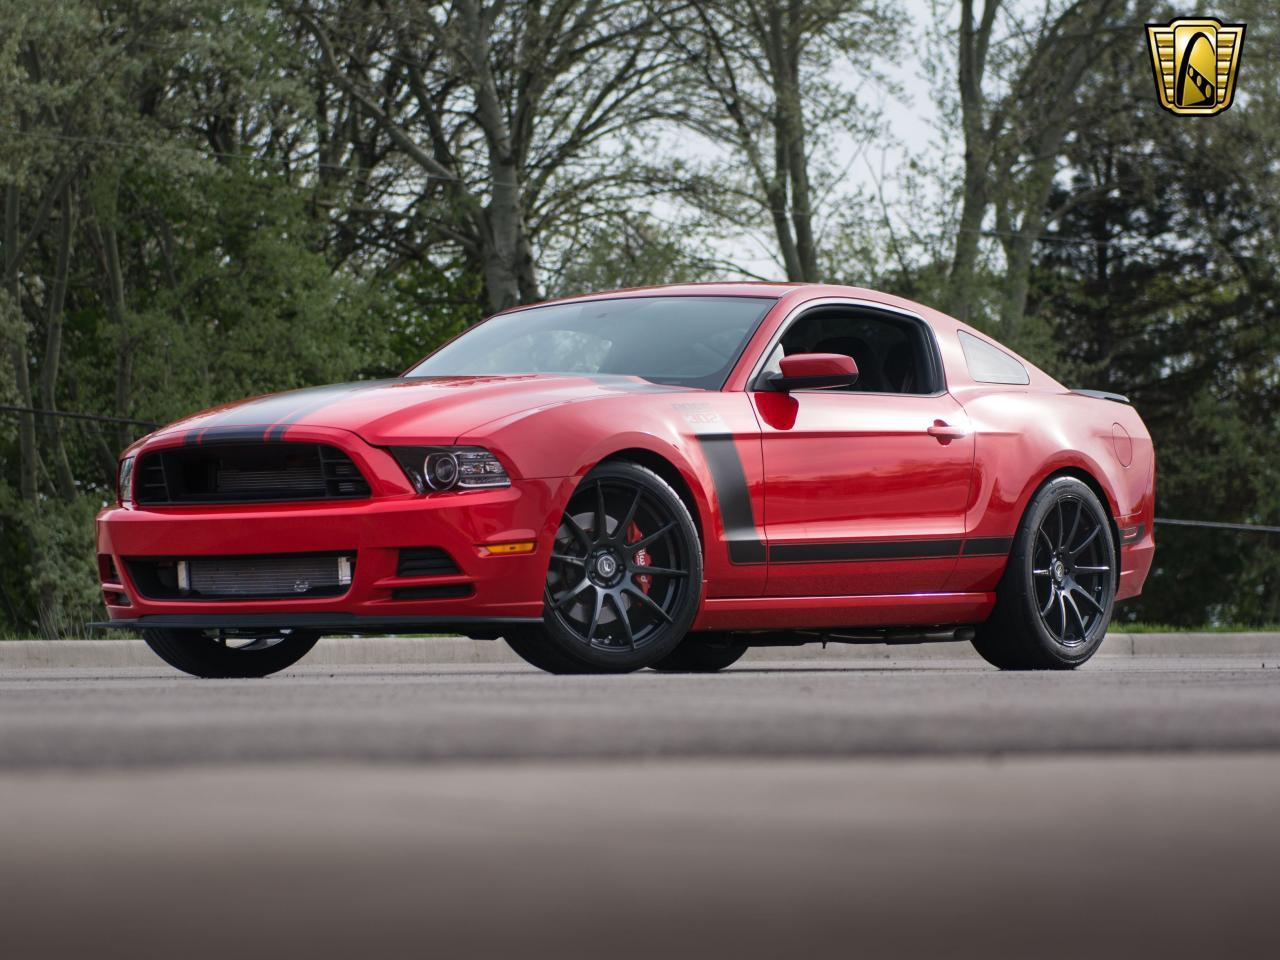 Large Picture of 2013 Ford Mustang located in Kenosha Wisconsin Offered by Gateway Classic Cars - Milwaukee - L1AH